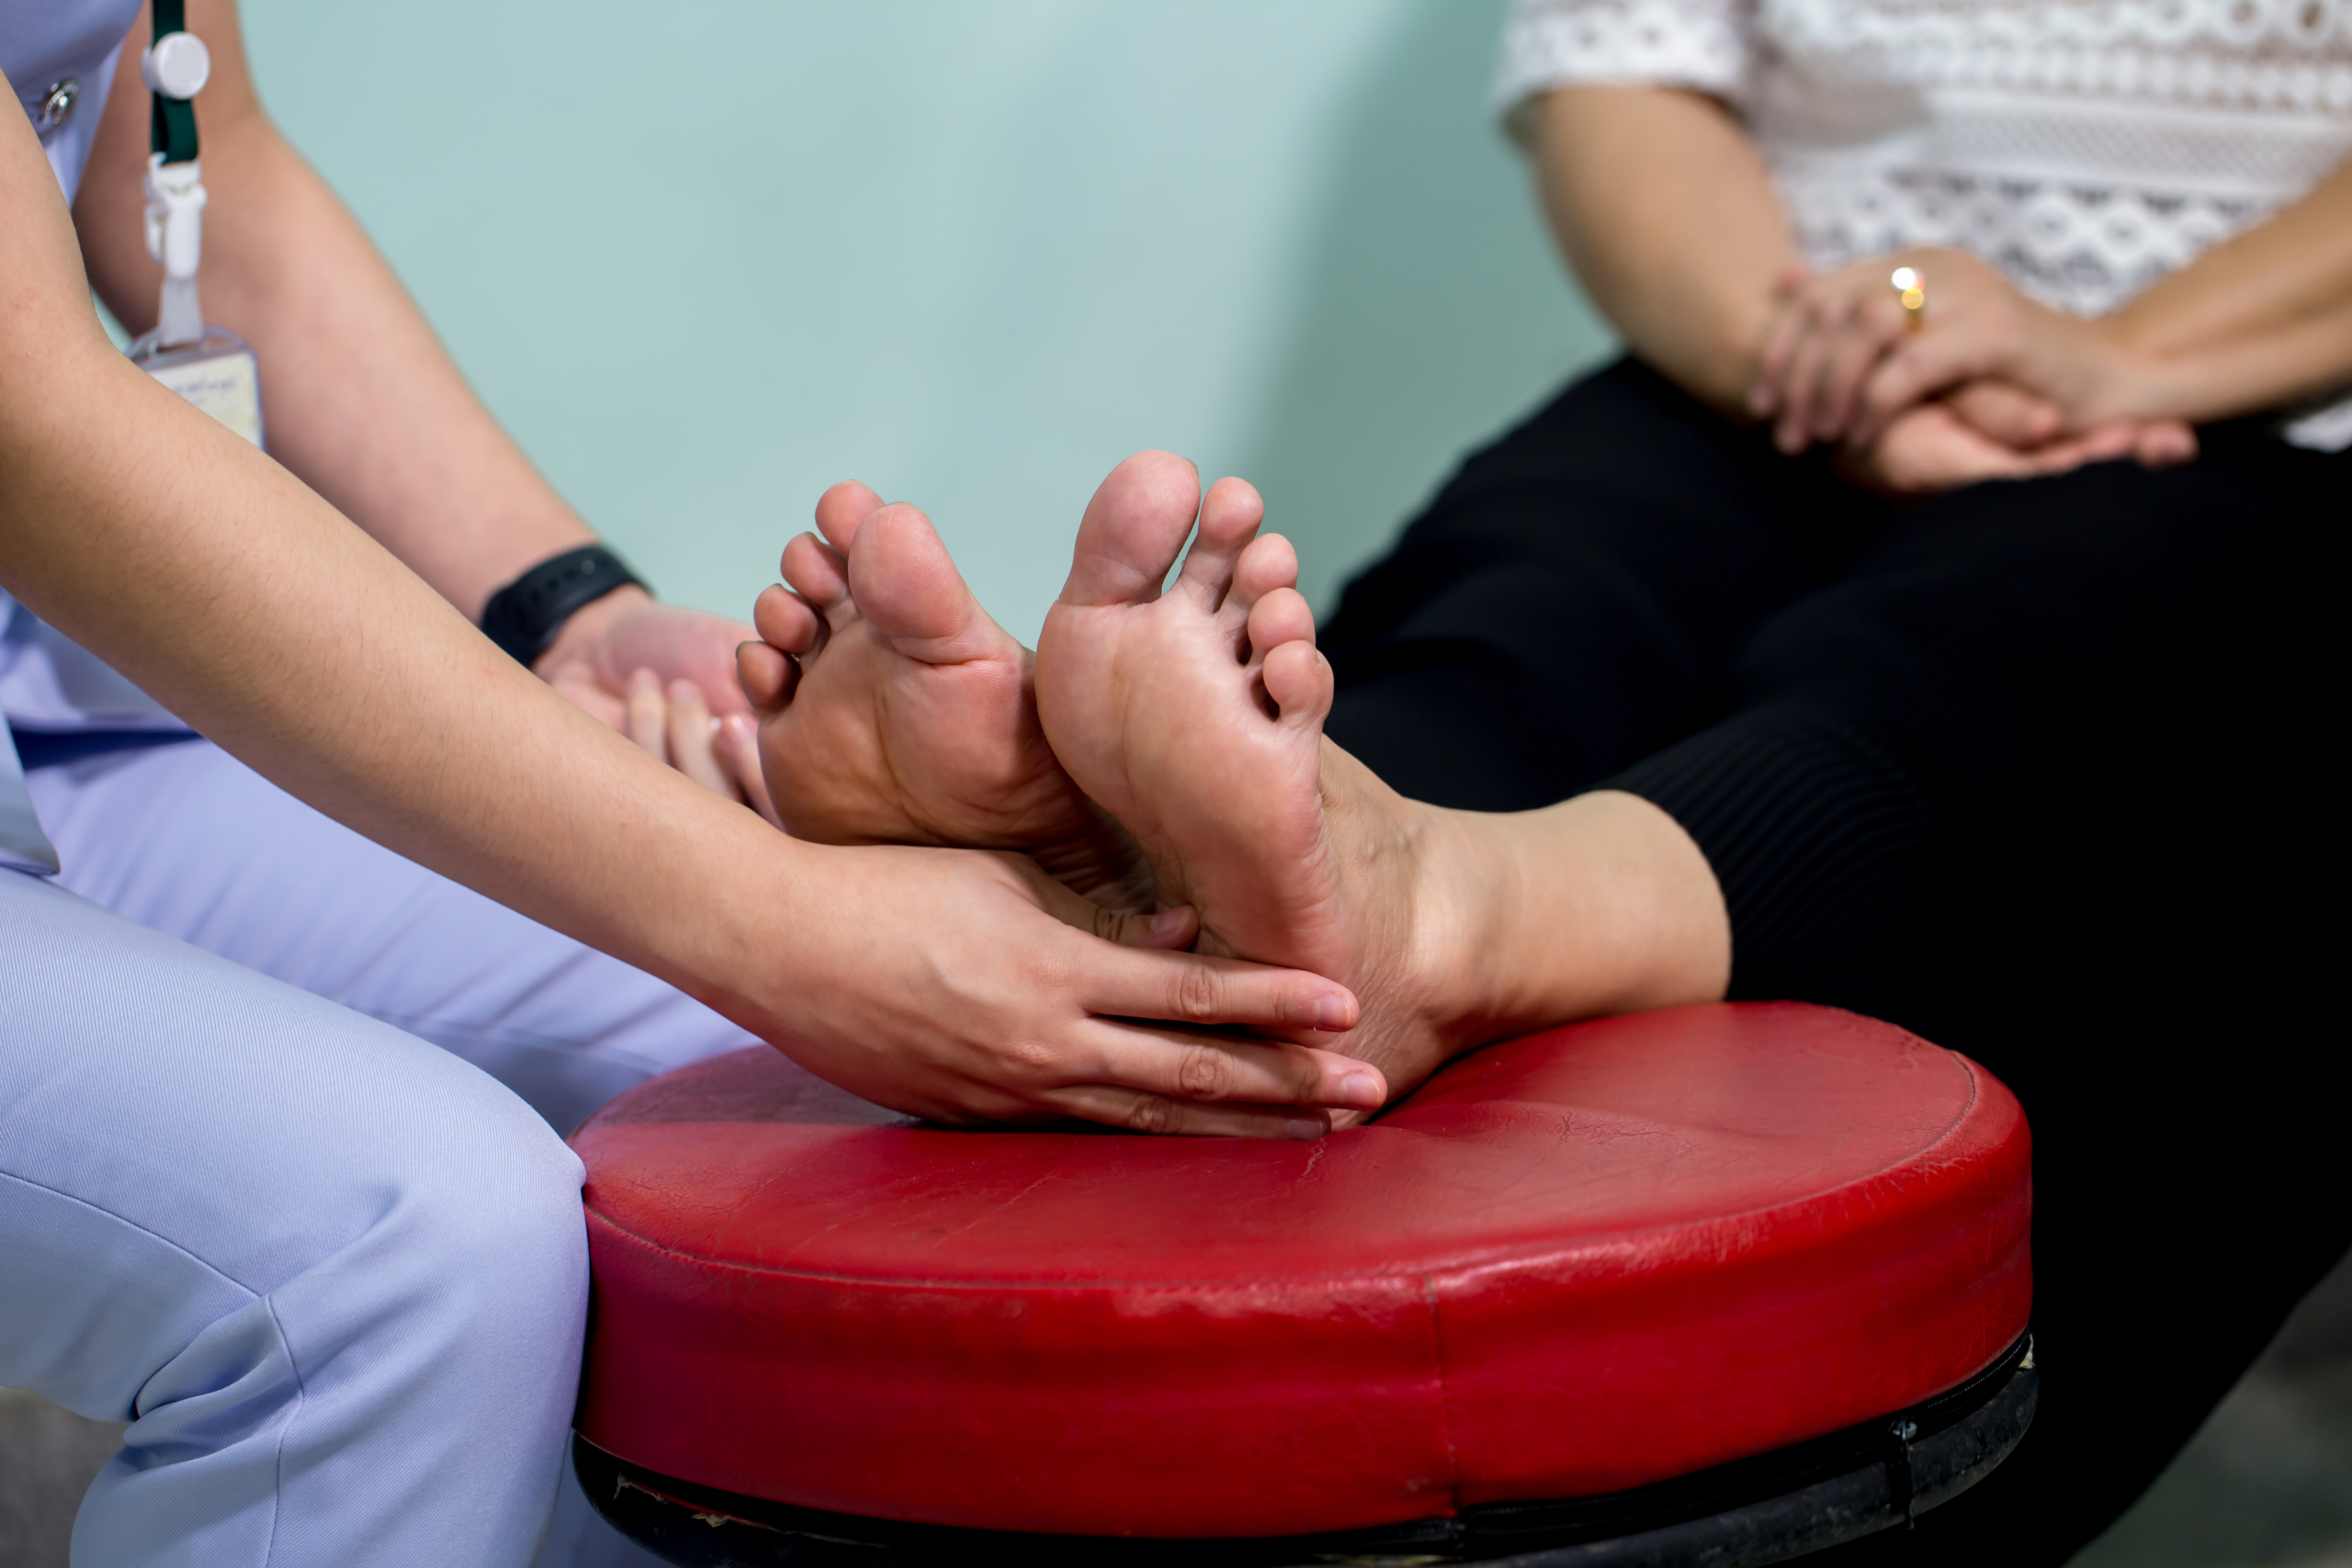 Foot Care Tips For People With Diabetes